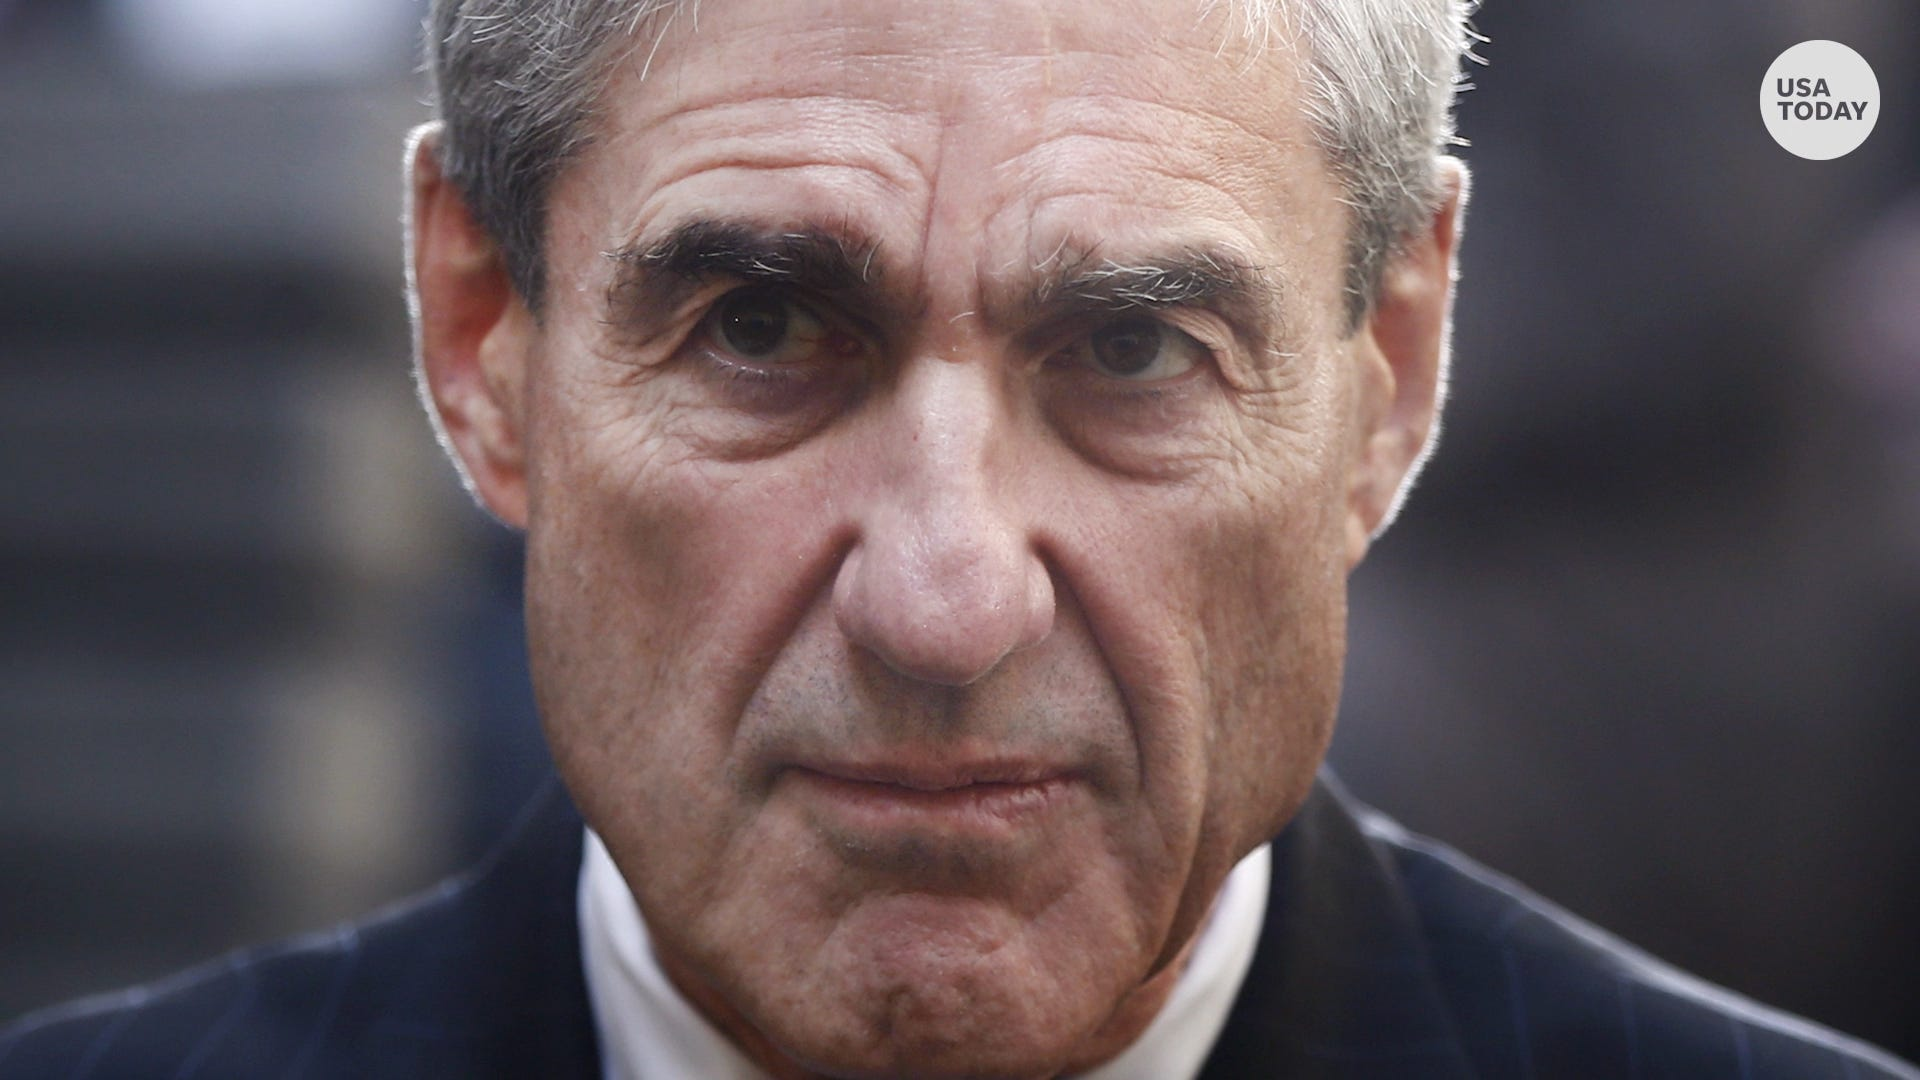 Mueller report's key takeaways